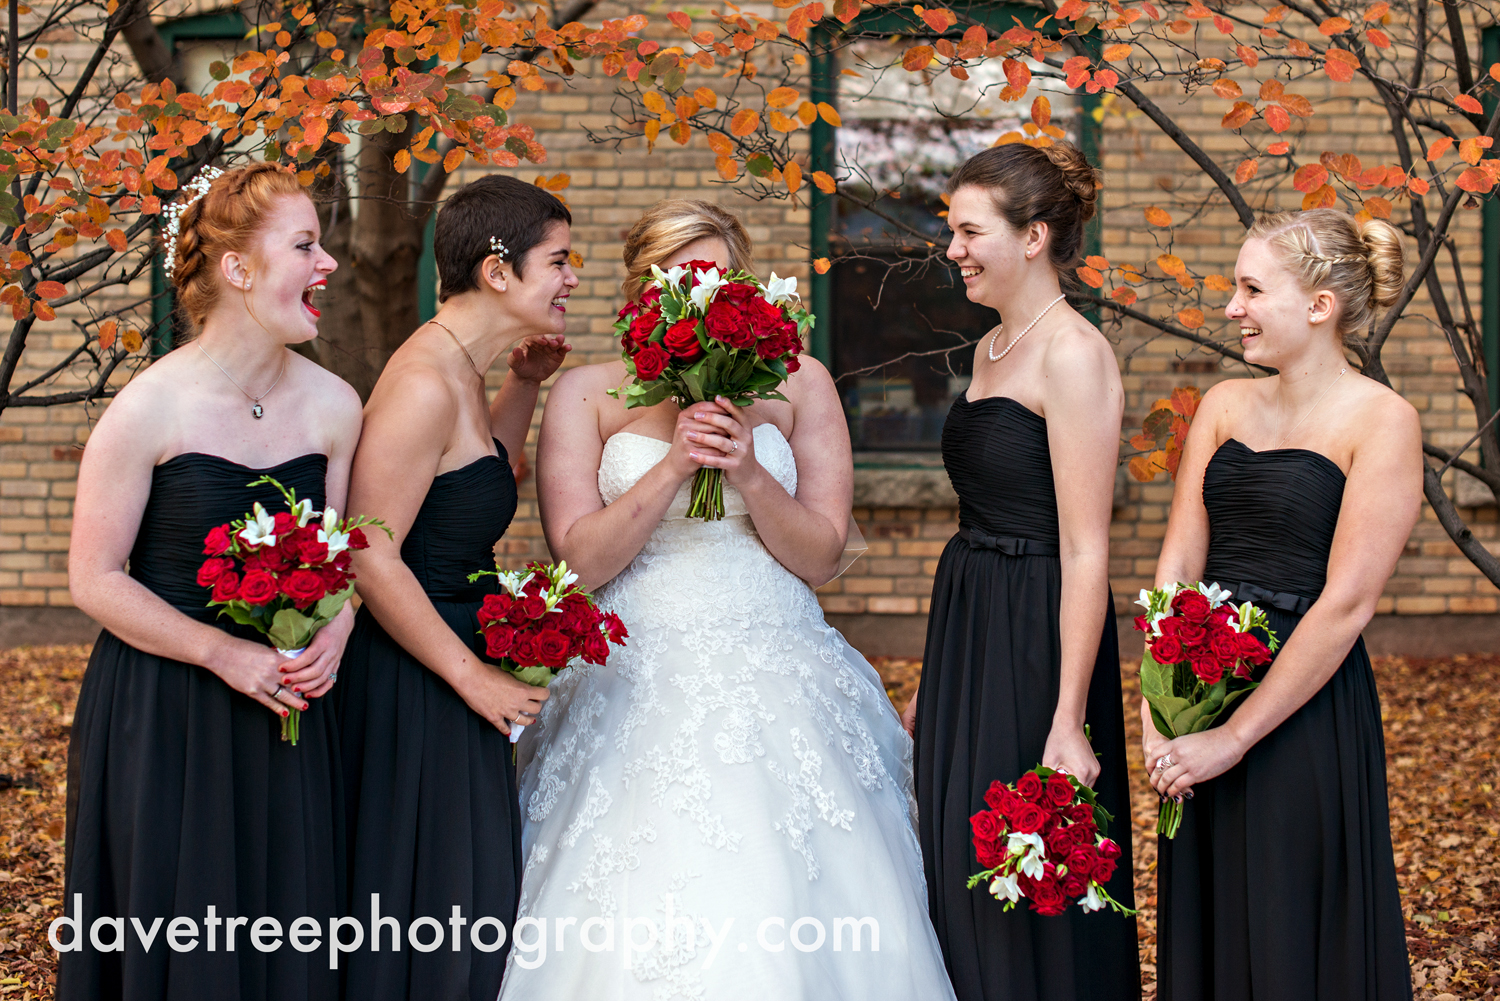 holland_wedding_photographer_55.jpg